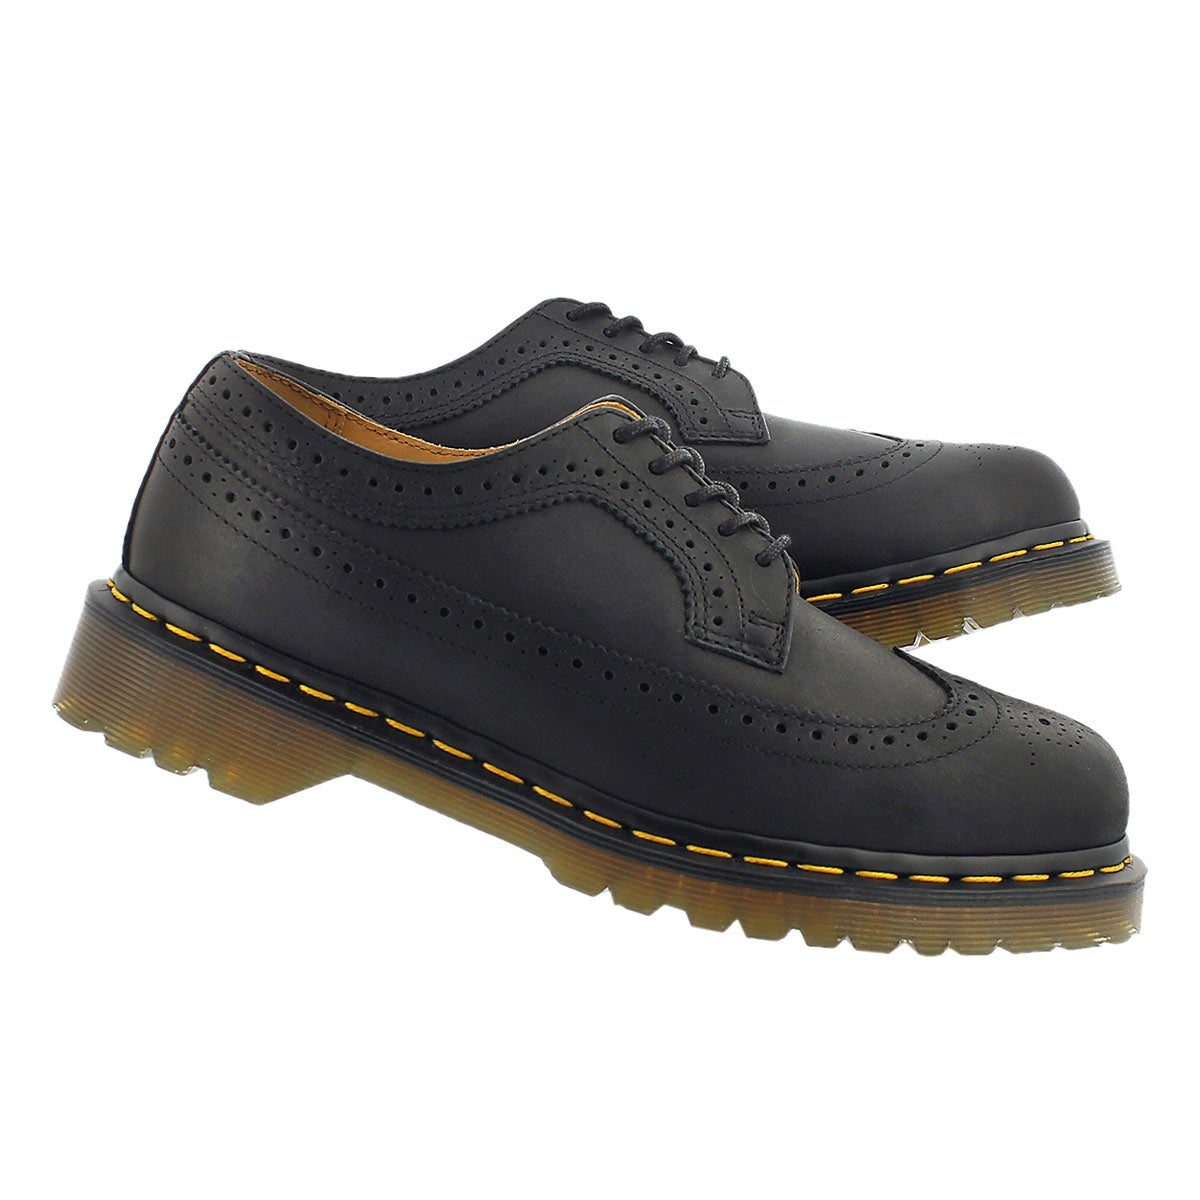 Mns 3989 5 eye blk brogue oxford